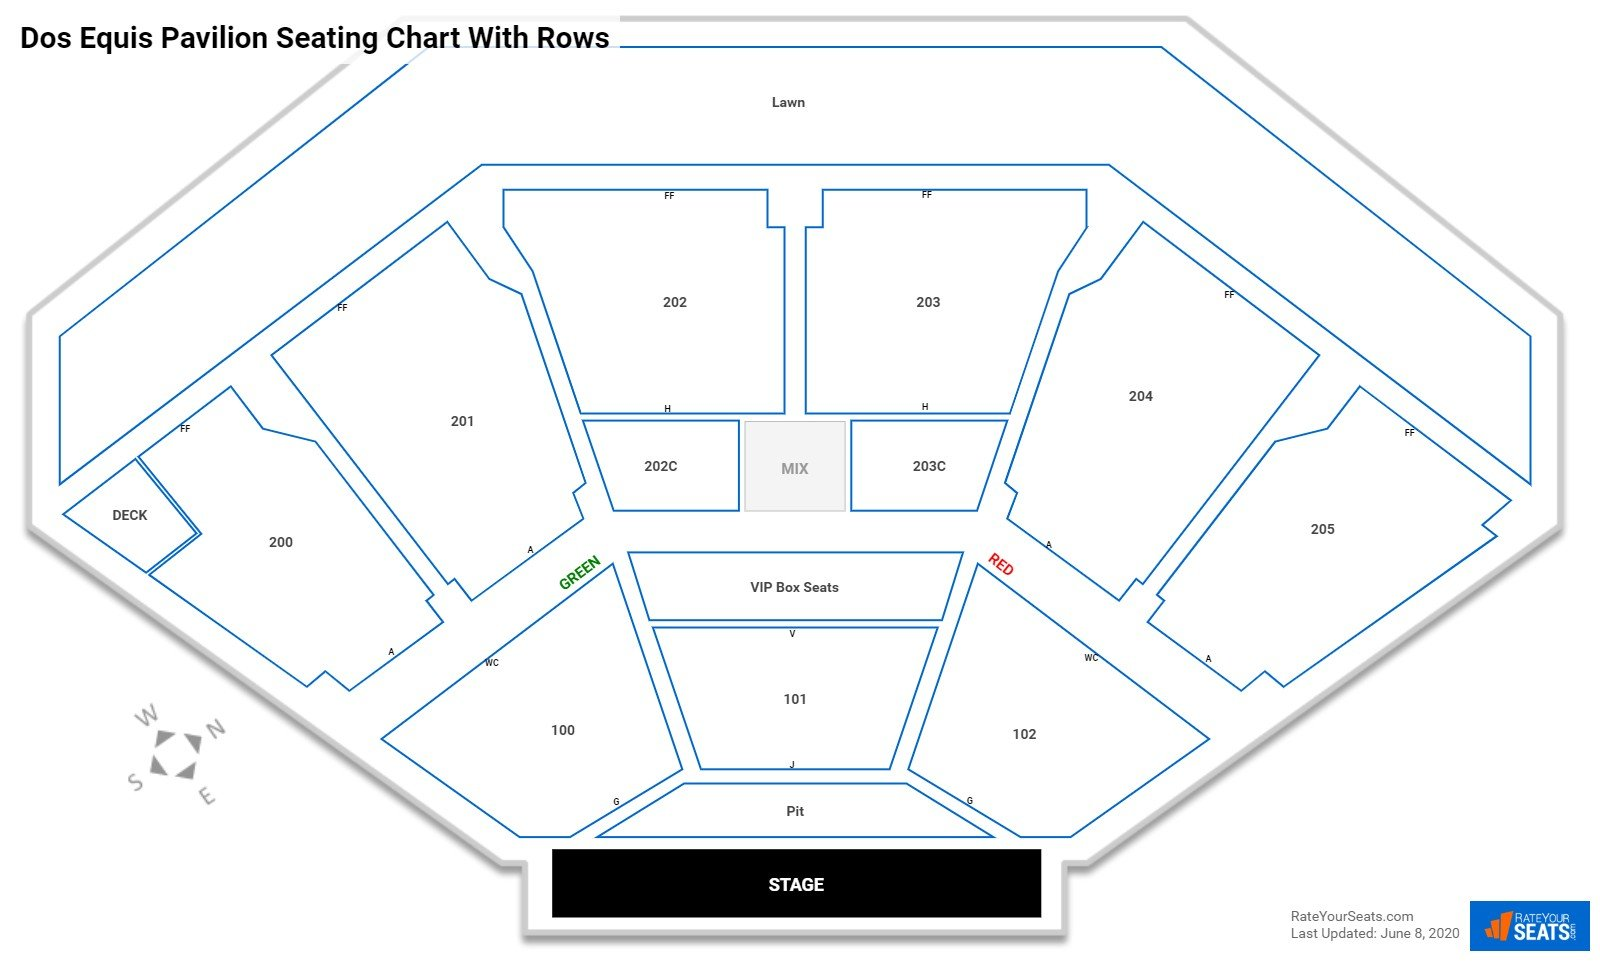 Dos Equis Pavilion seating chart with rows